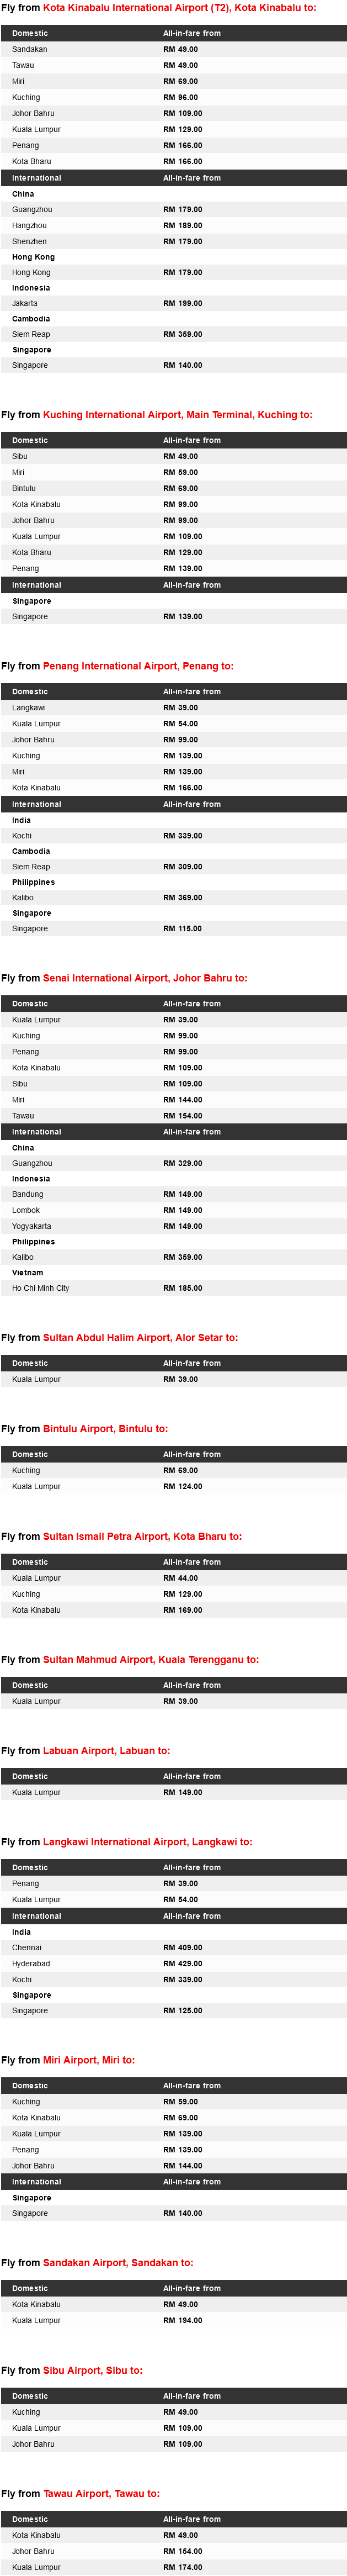 AirAsia Buy Now Fly Now Fares